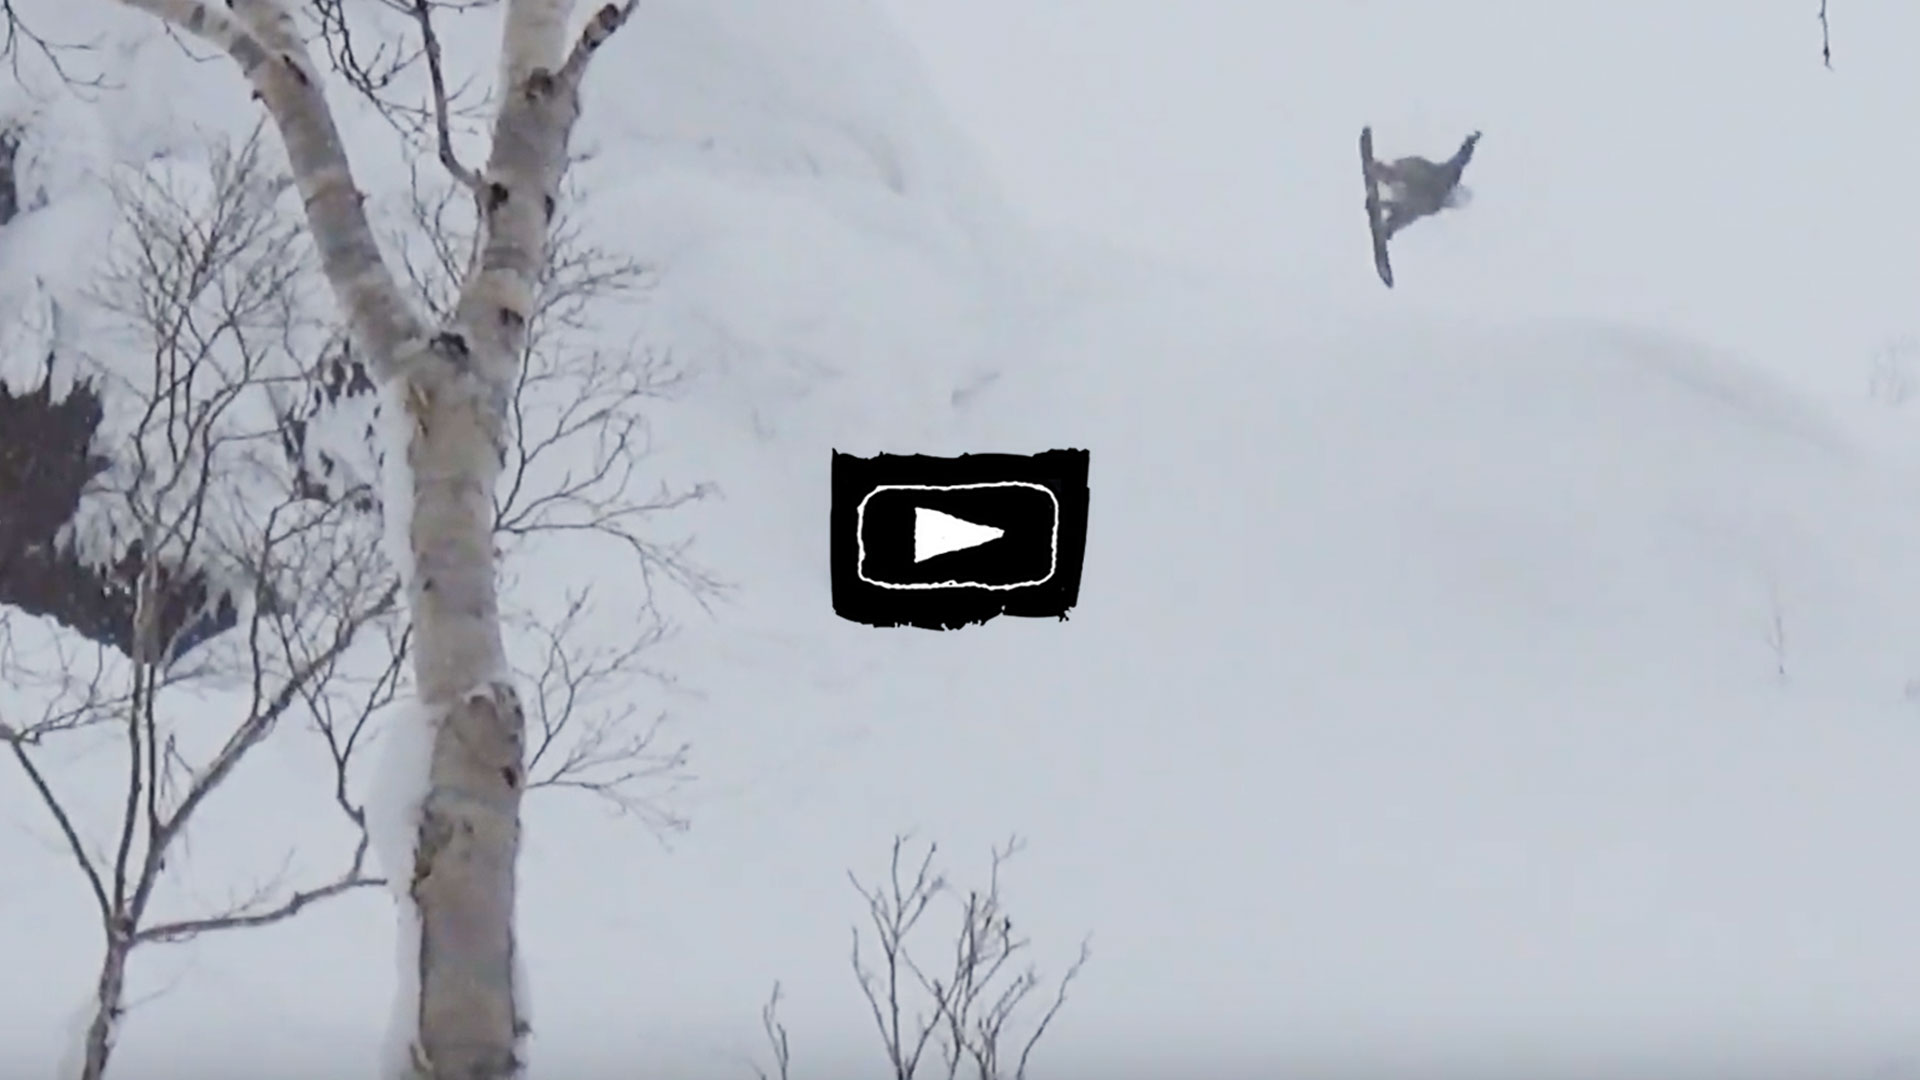 Cure Your Summer Sickness With These Japan Powder Clips